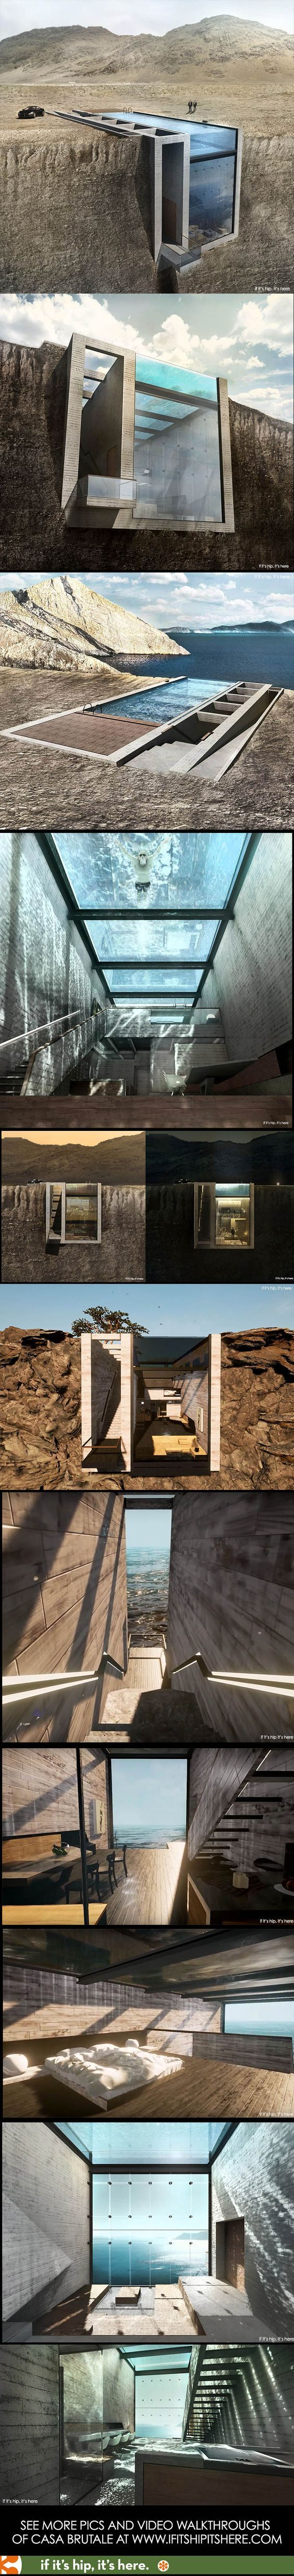 If Casa Brutale by OPA Is The Home Of The Future, Bring It On. [25 Pics] - if it's hip, it's here